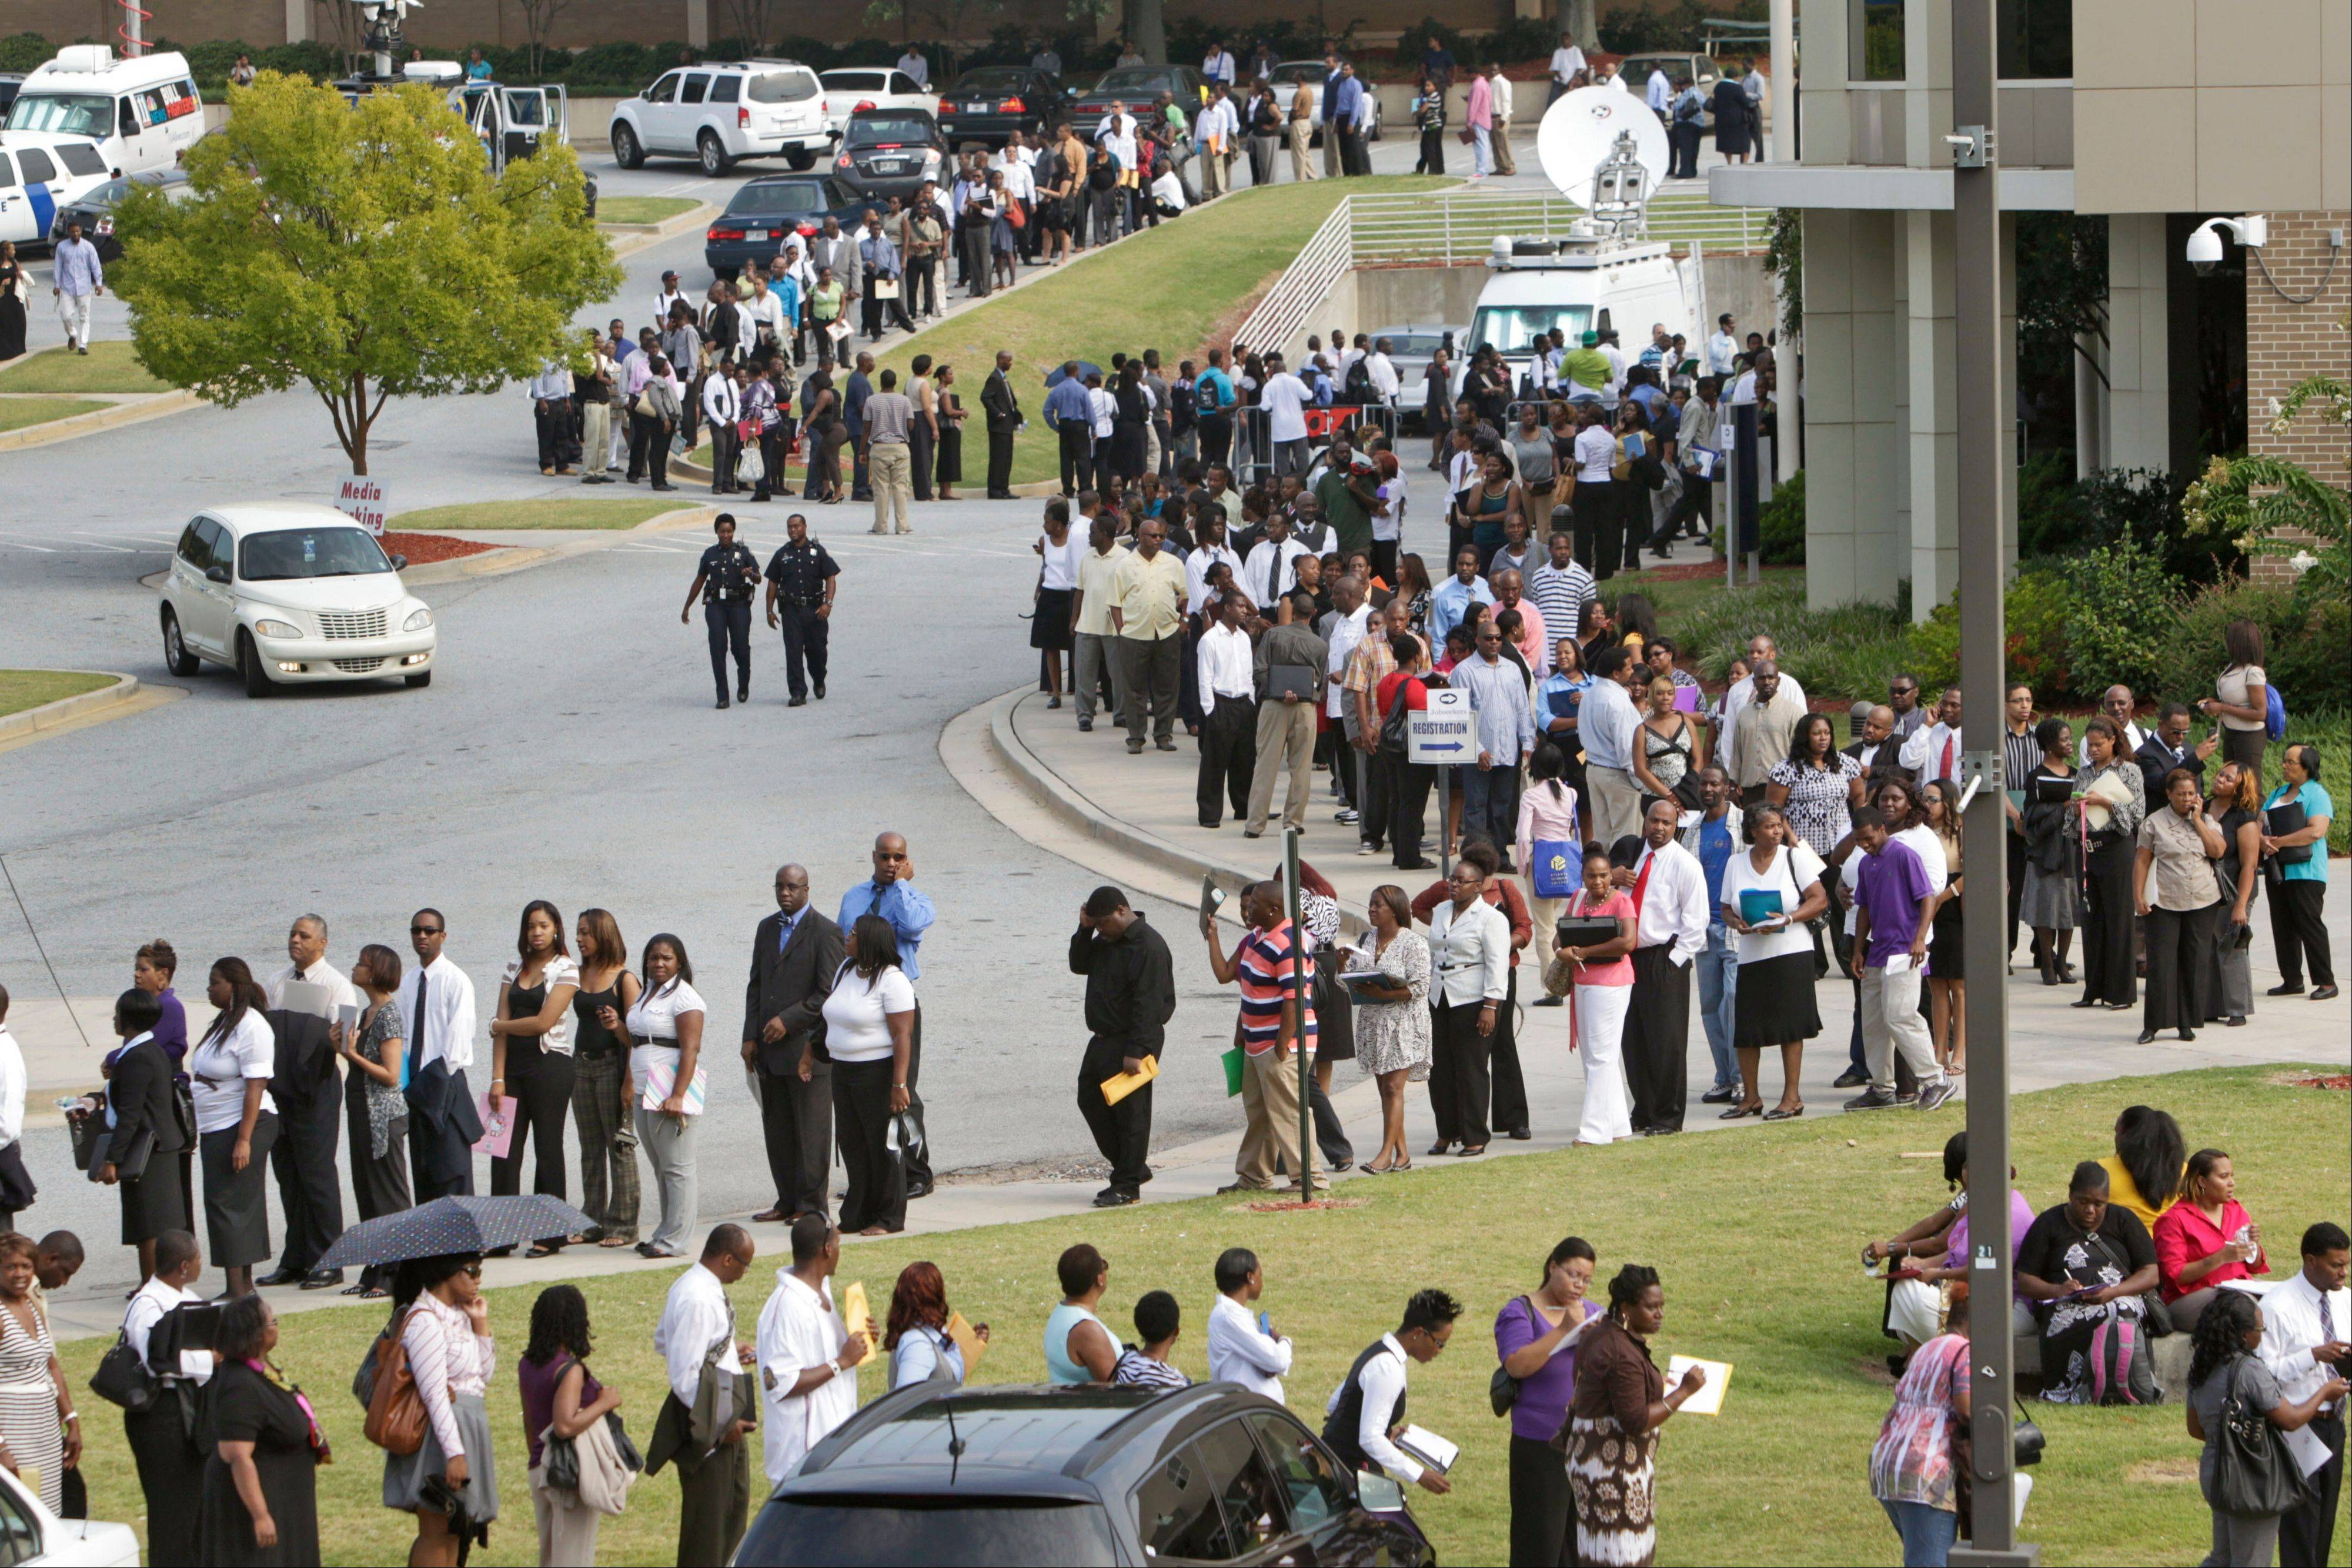 People wait in line during a job fair, sponsored by the Congressional Black Caucus, on the campus of Atlanta Technical College in Atlanta. Economists no longer think the economy's troubles are fleeting. Their gloominess reflects expectations that slow growth, high unemployment and weak consumer spending will persist into next year.